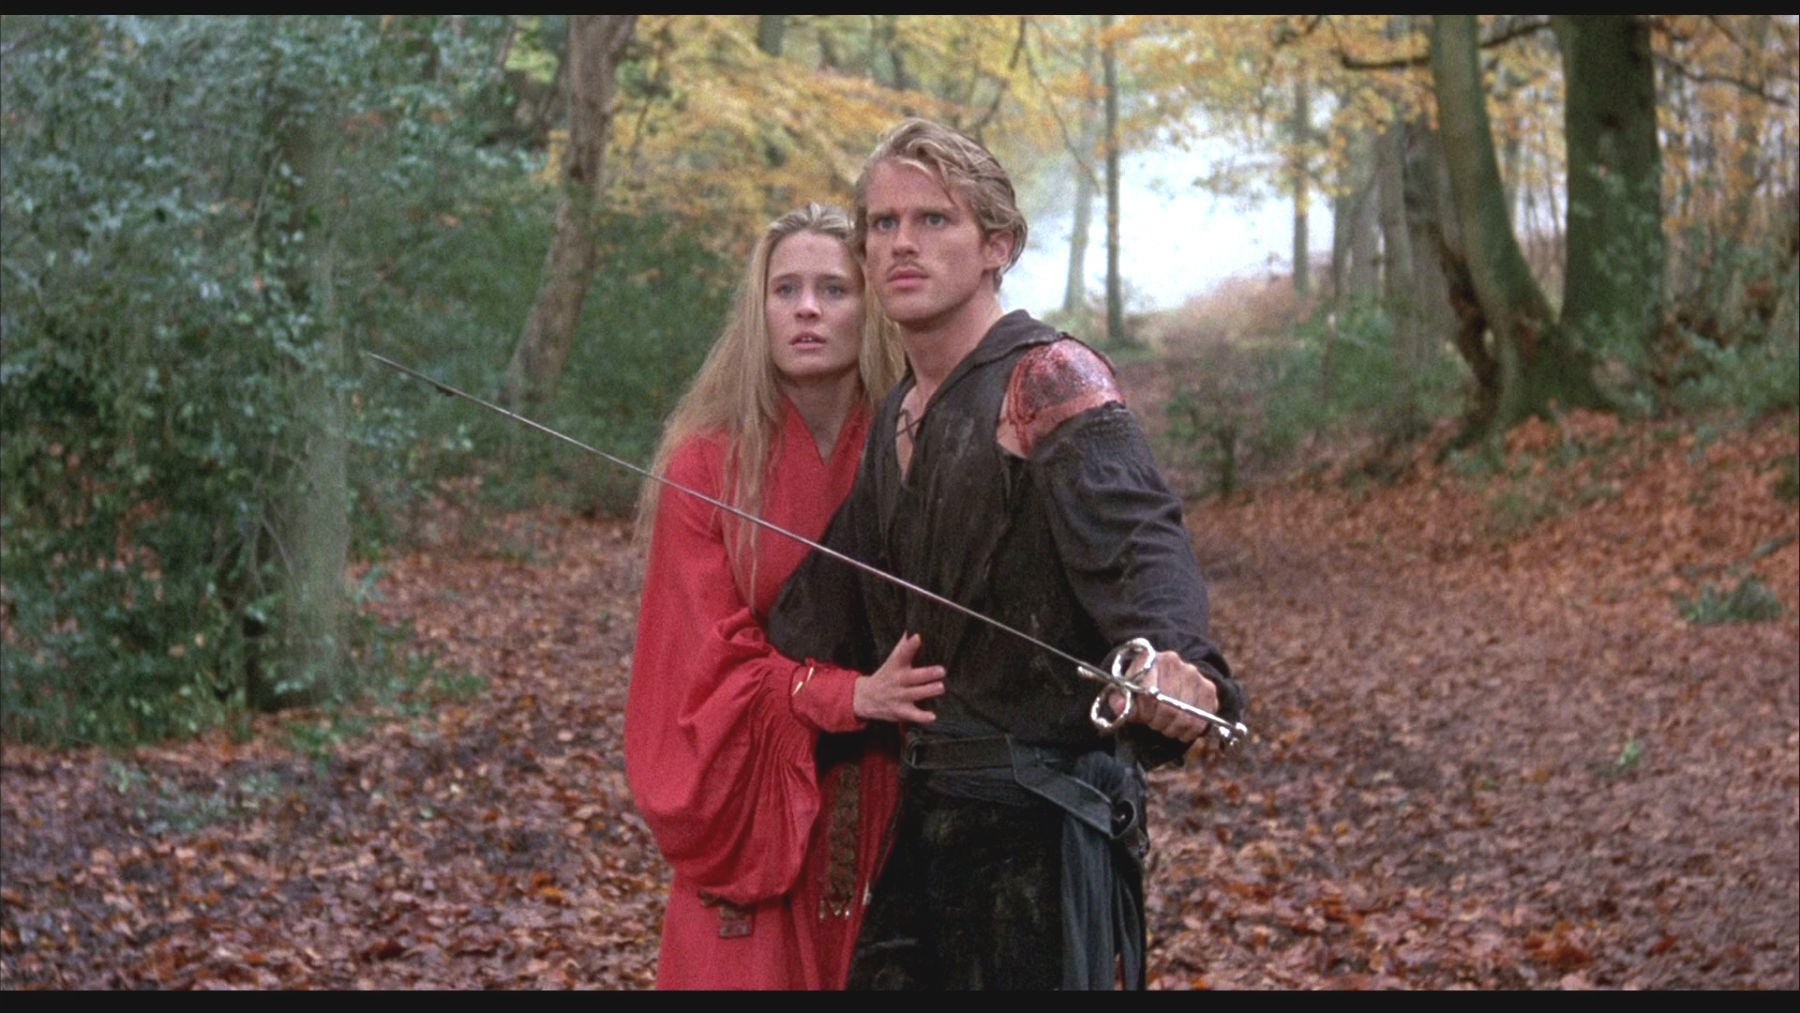 The Princess Bride - Upstate Films, Ltd.